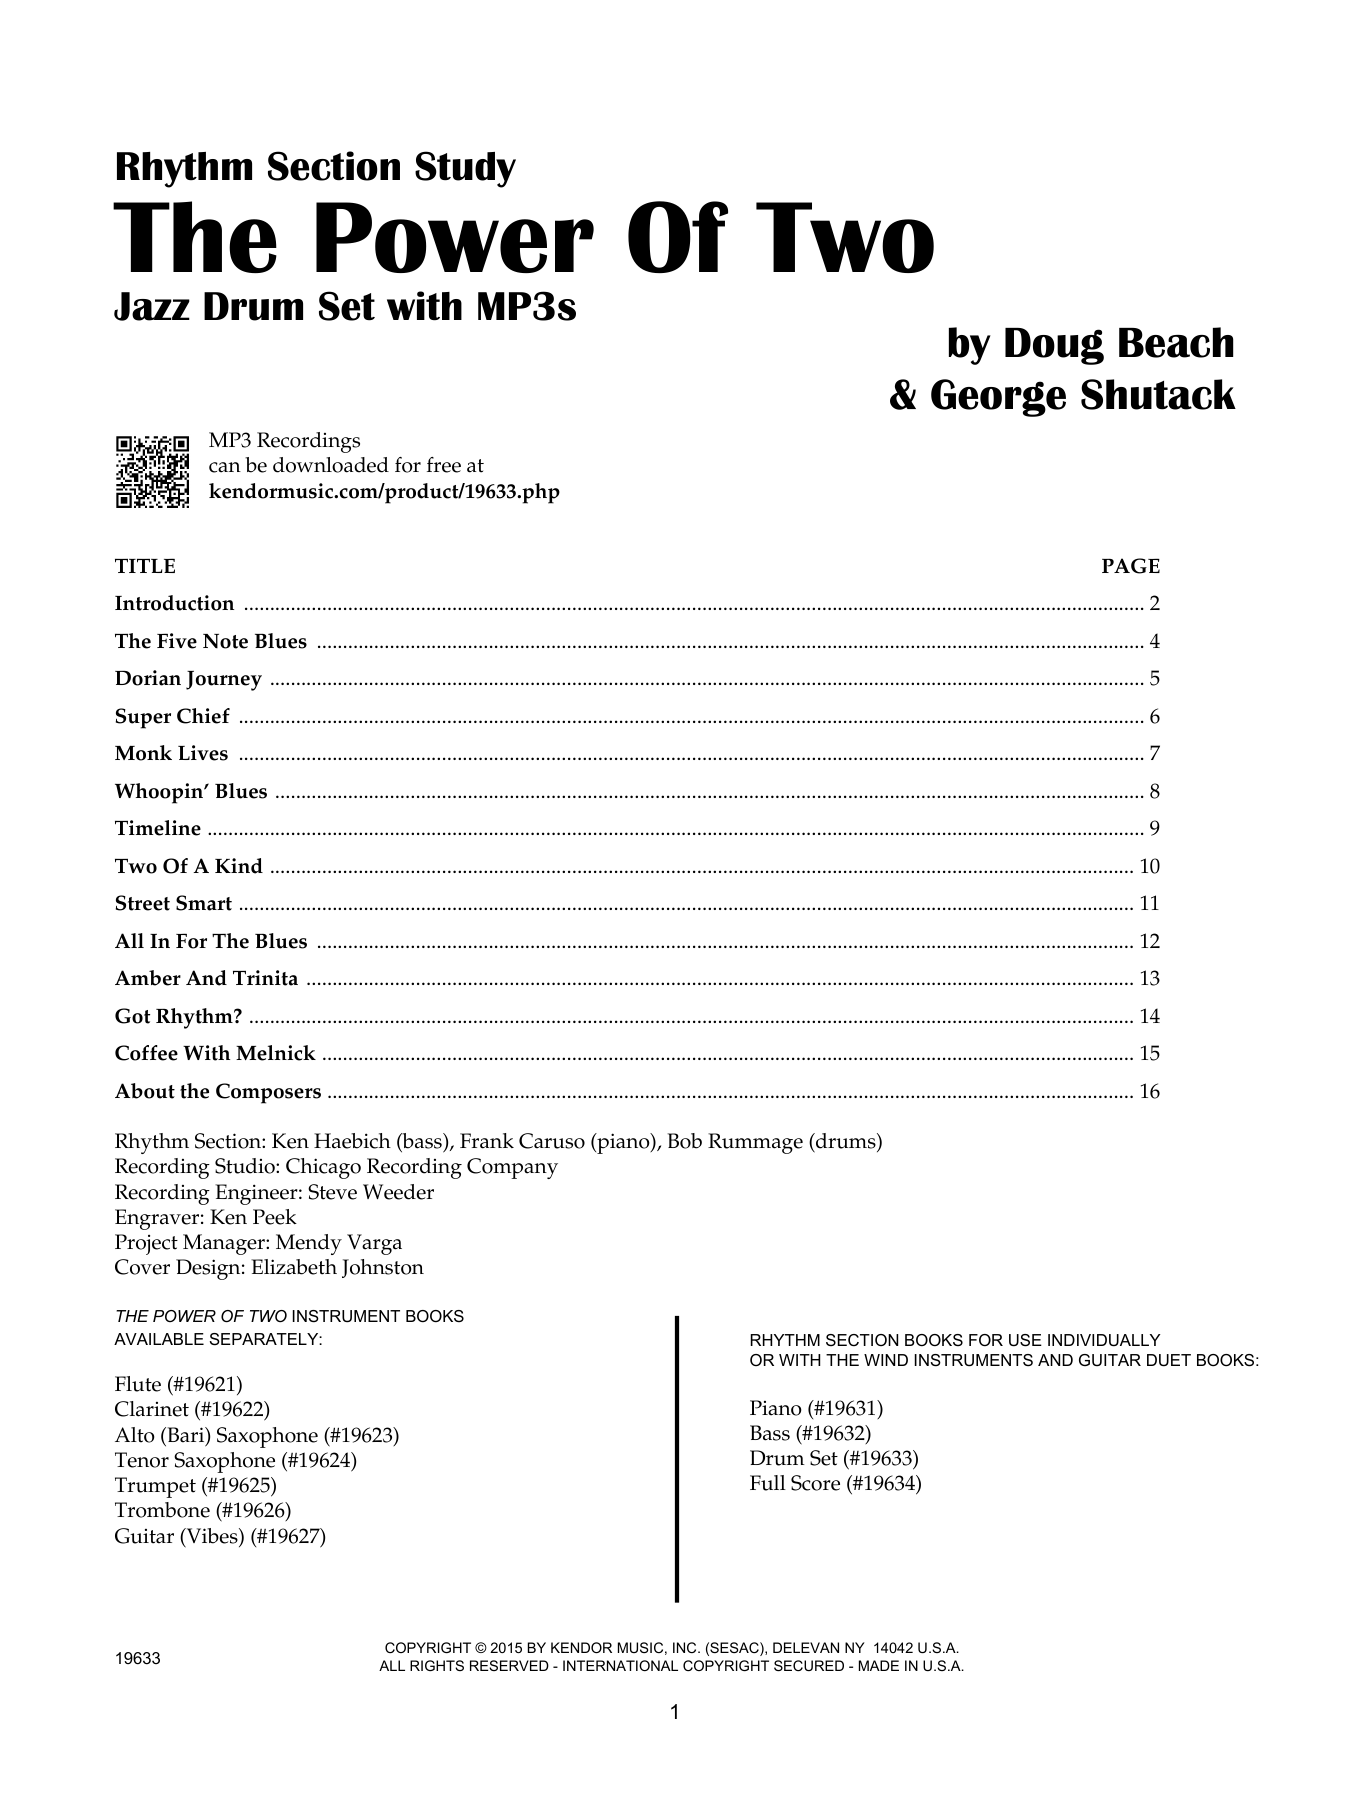 The Power Of Two - Drum Set - Drum Set Sheet Music